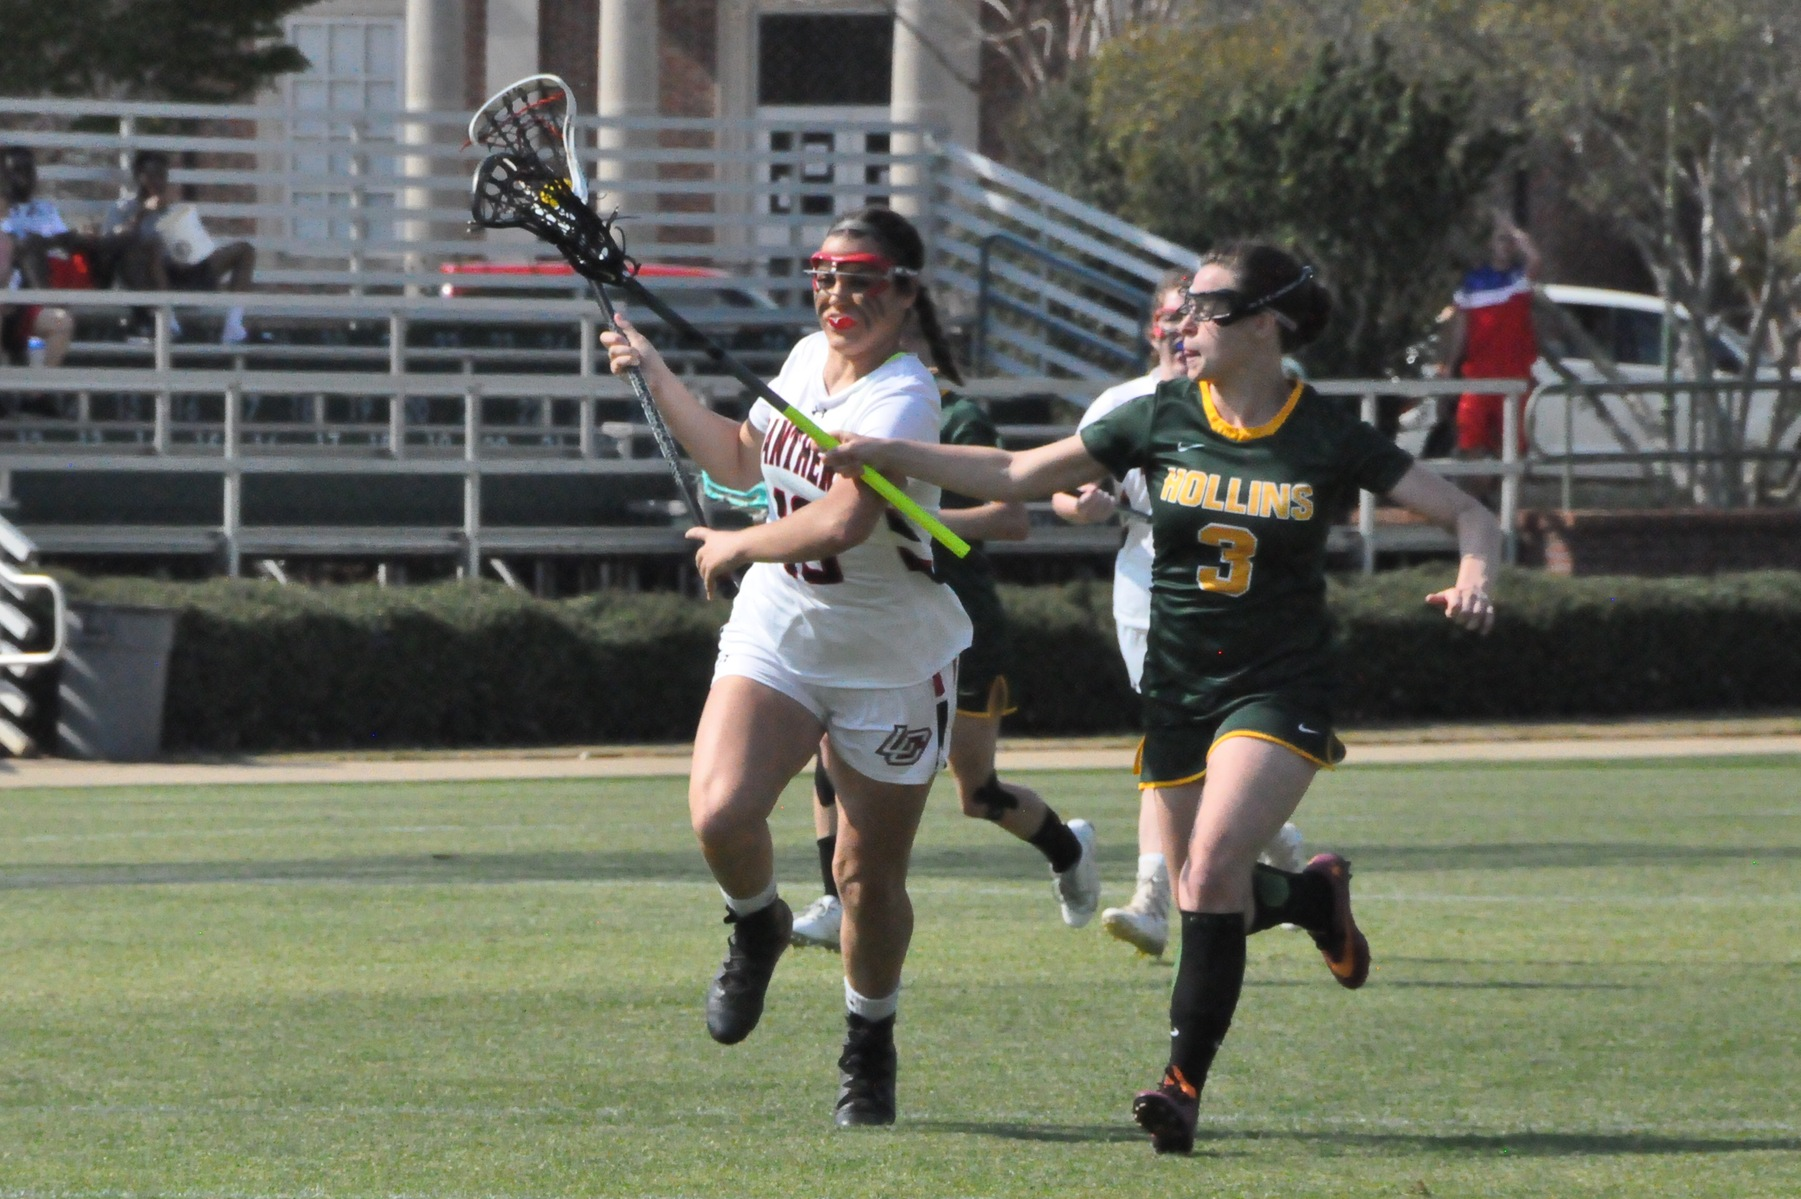 Lacrosse: Big first half sends Panthers past Hollins 21-6